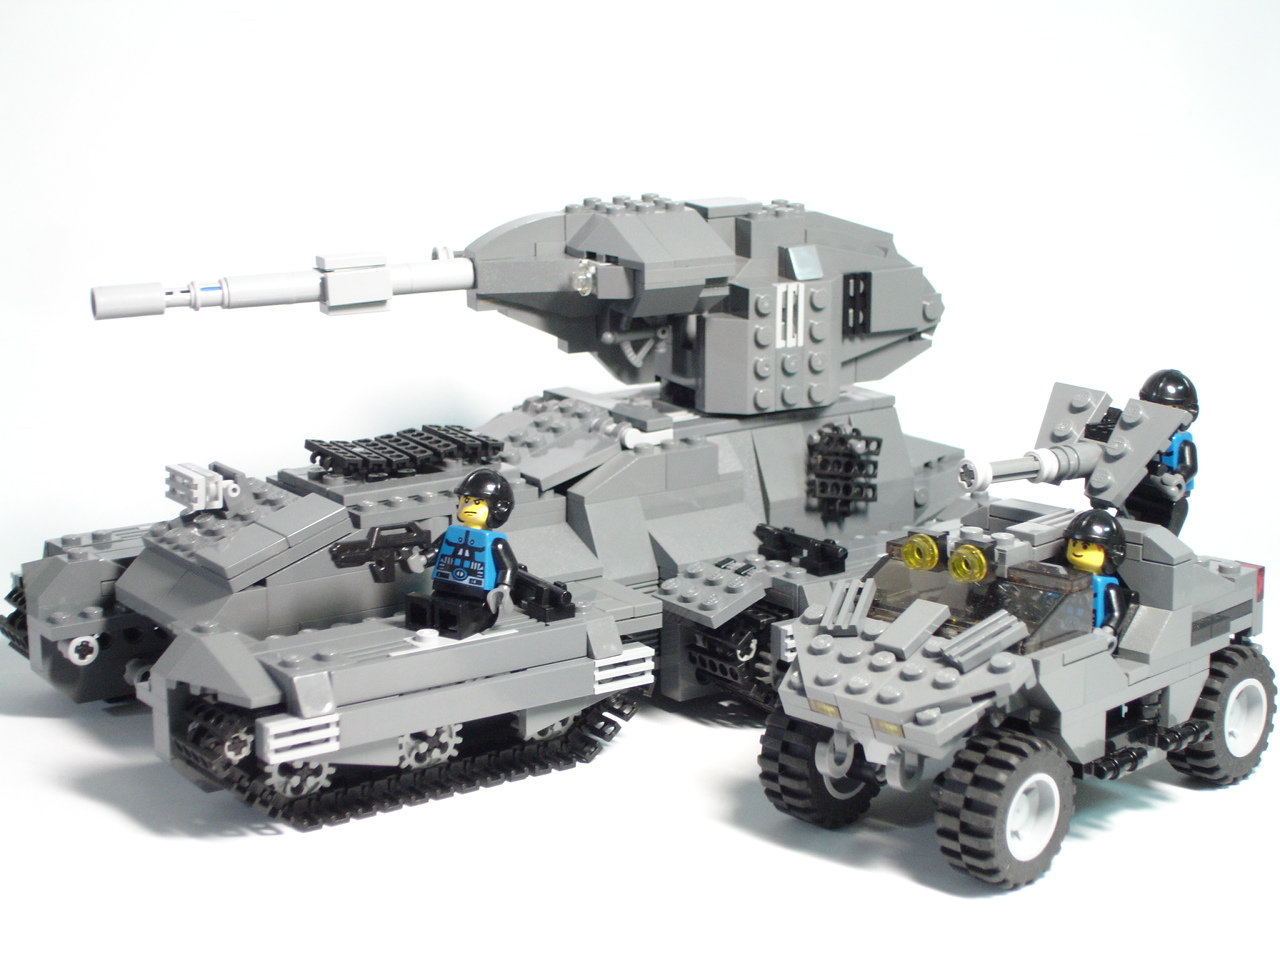 HALO -- Scorpion Tank: A LEGO® creation by Stephen Chao